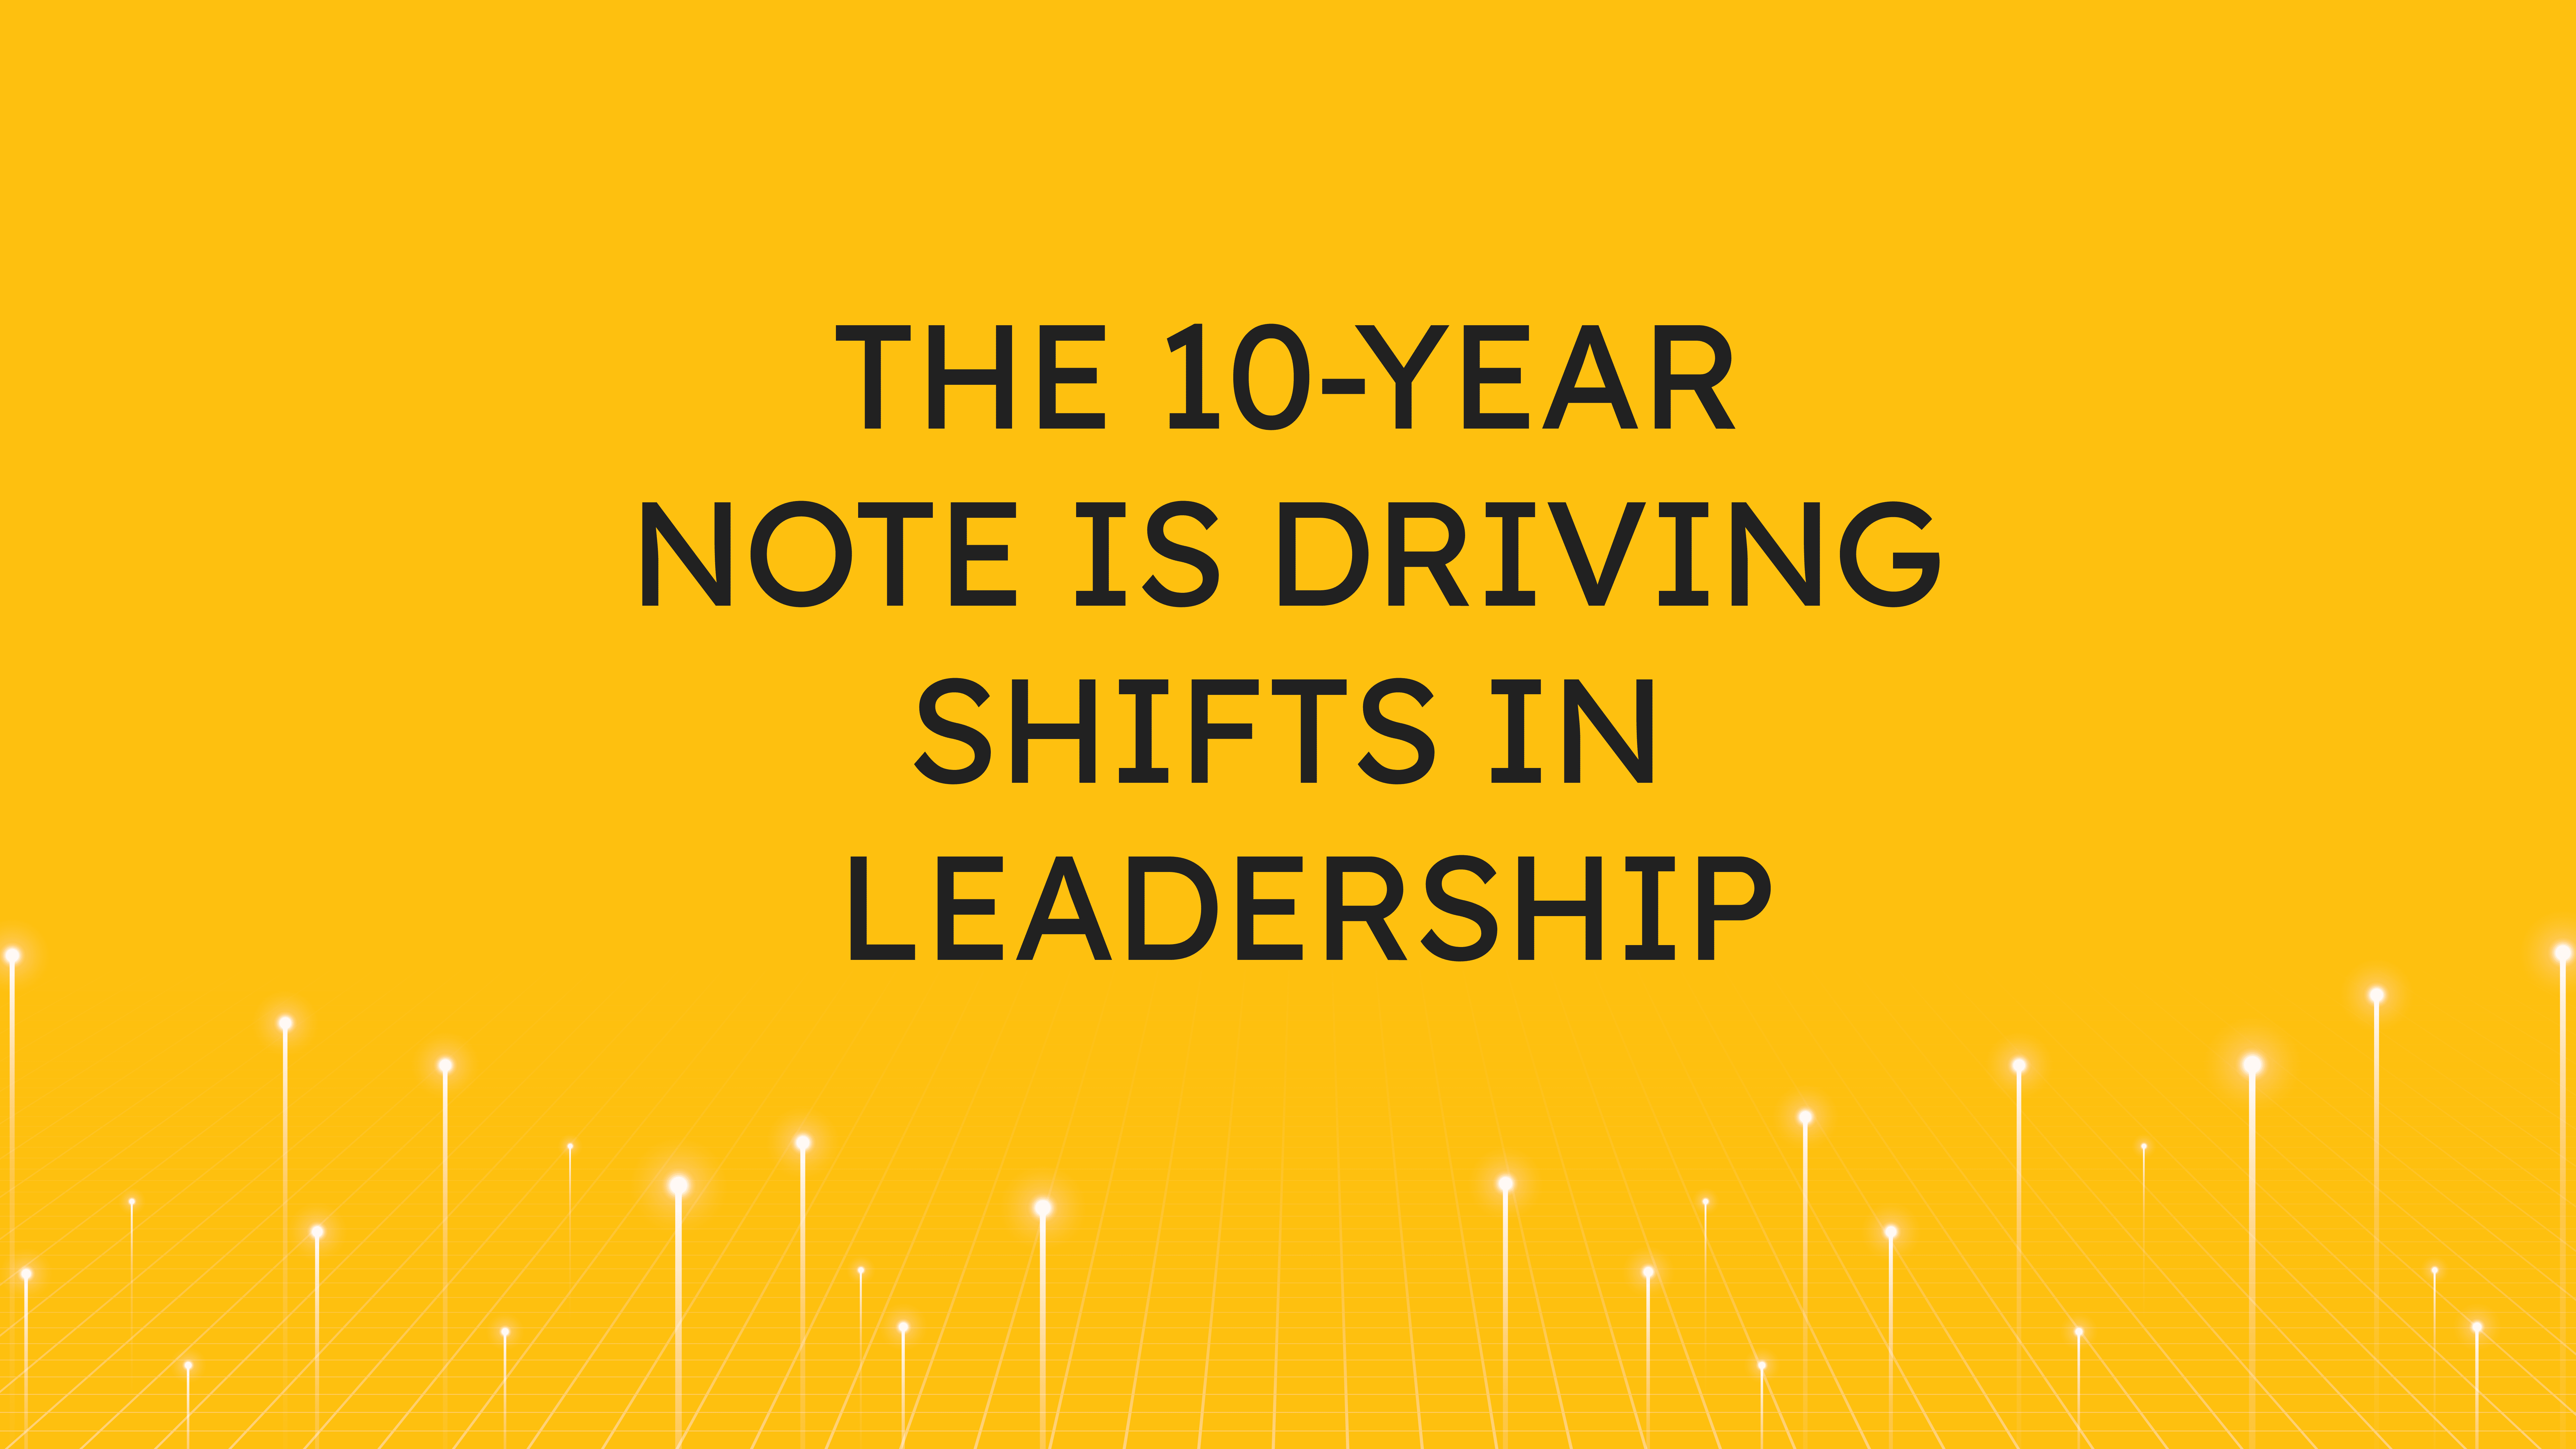 The 10-Year Note is  Driving Shifts in Leadership